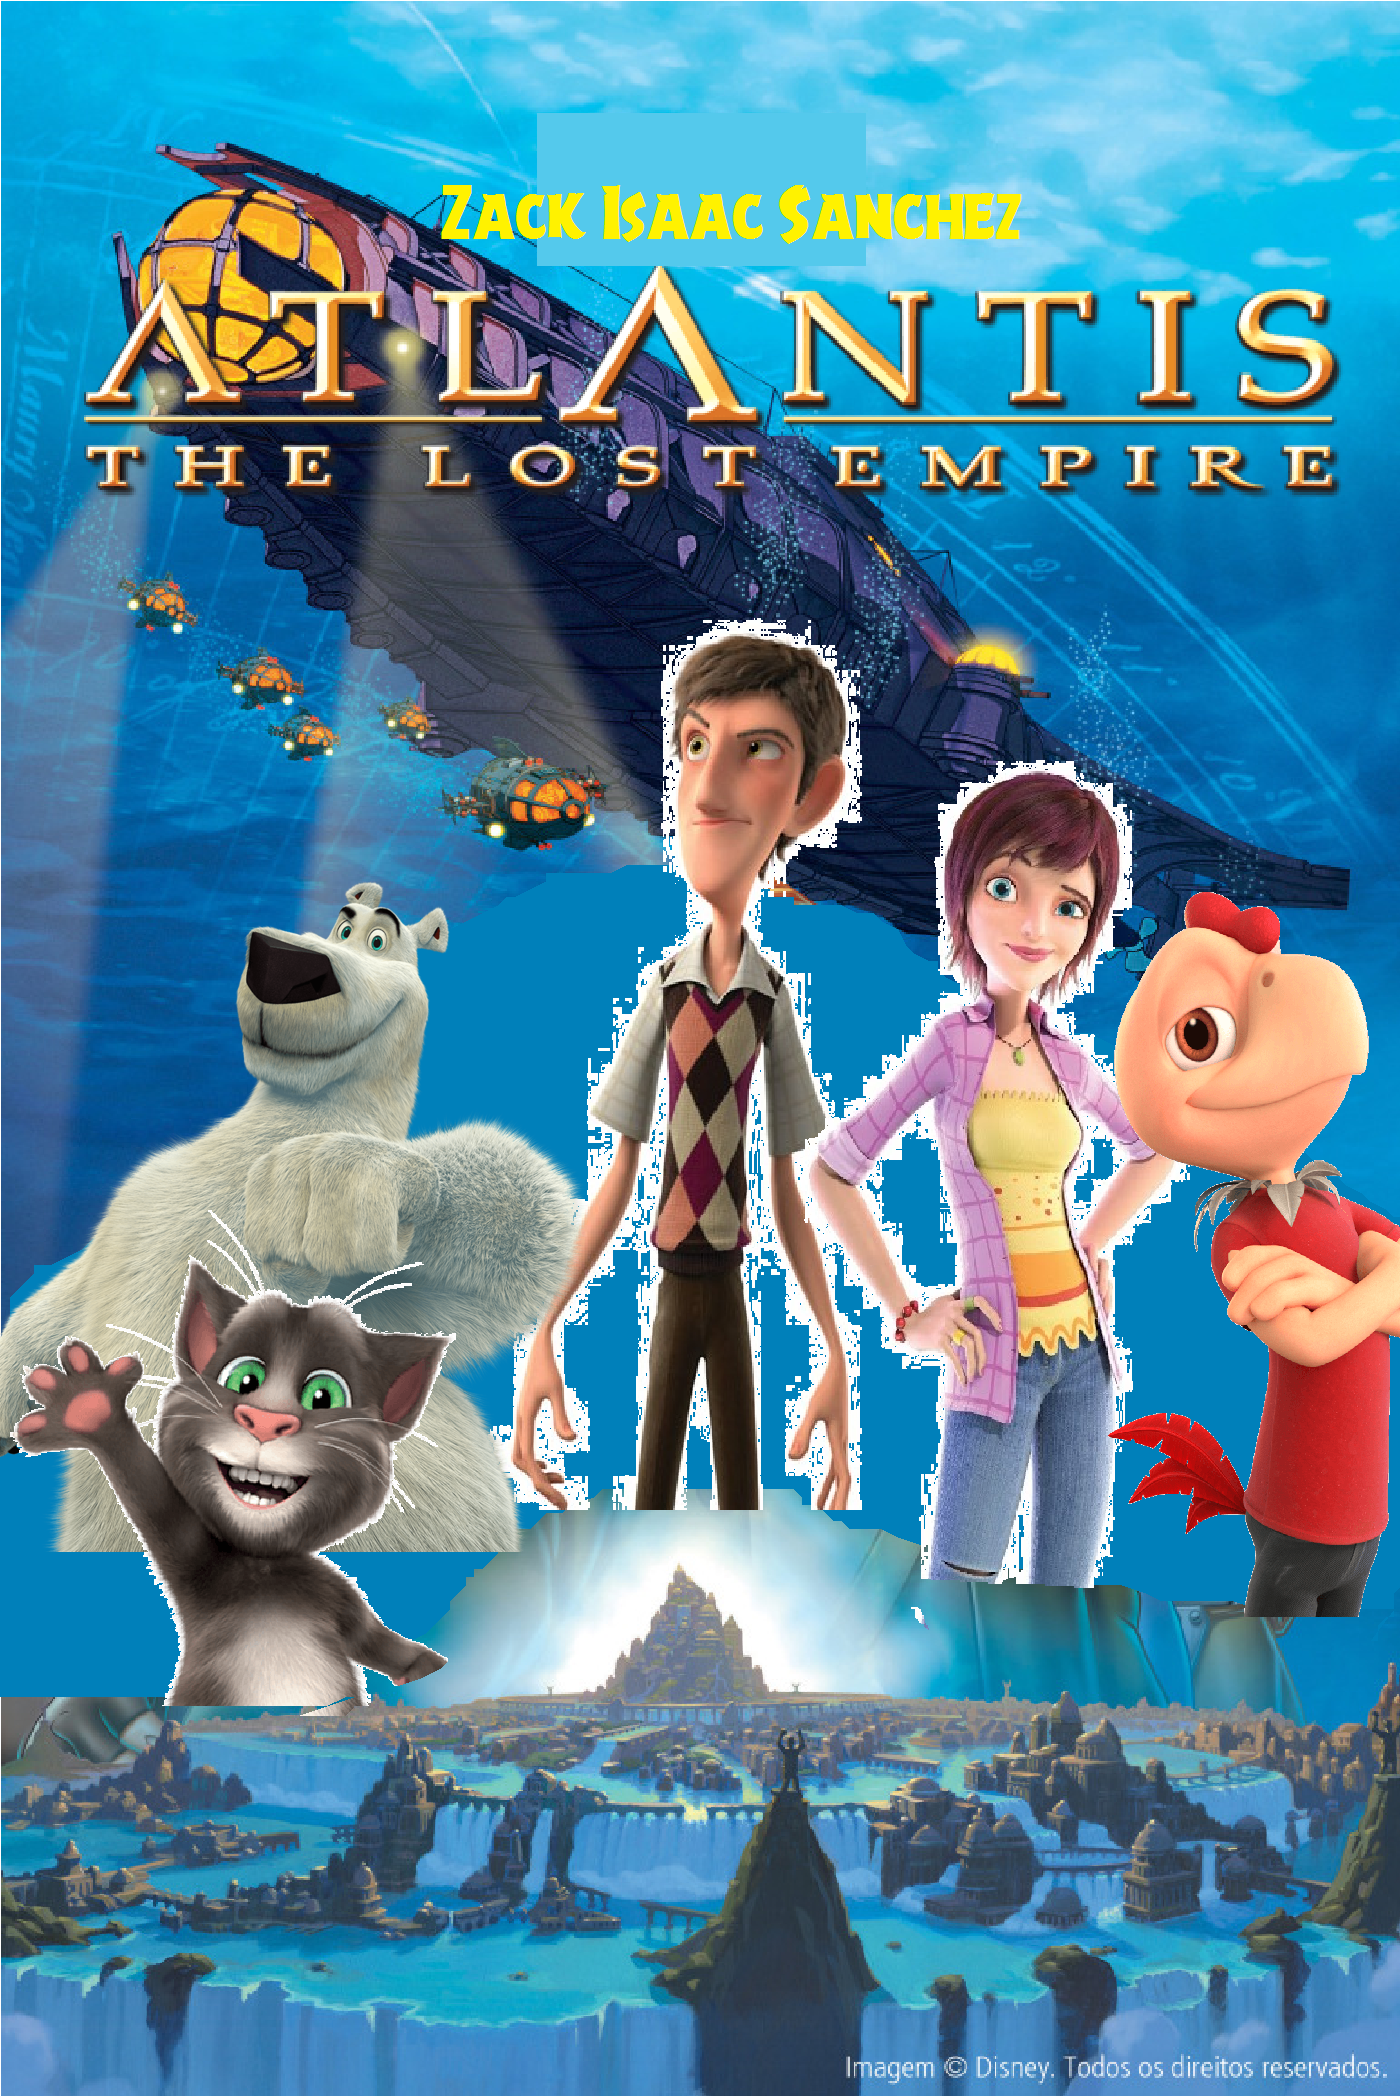 Atlantis: The Lost Empire (Zack Isaac Sanchez Style)